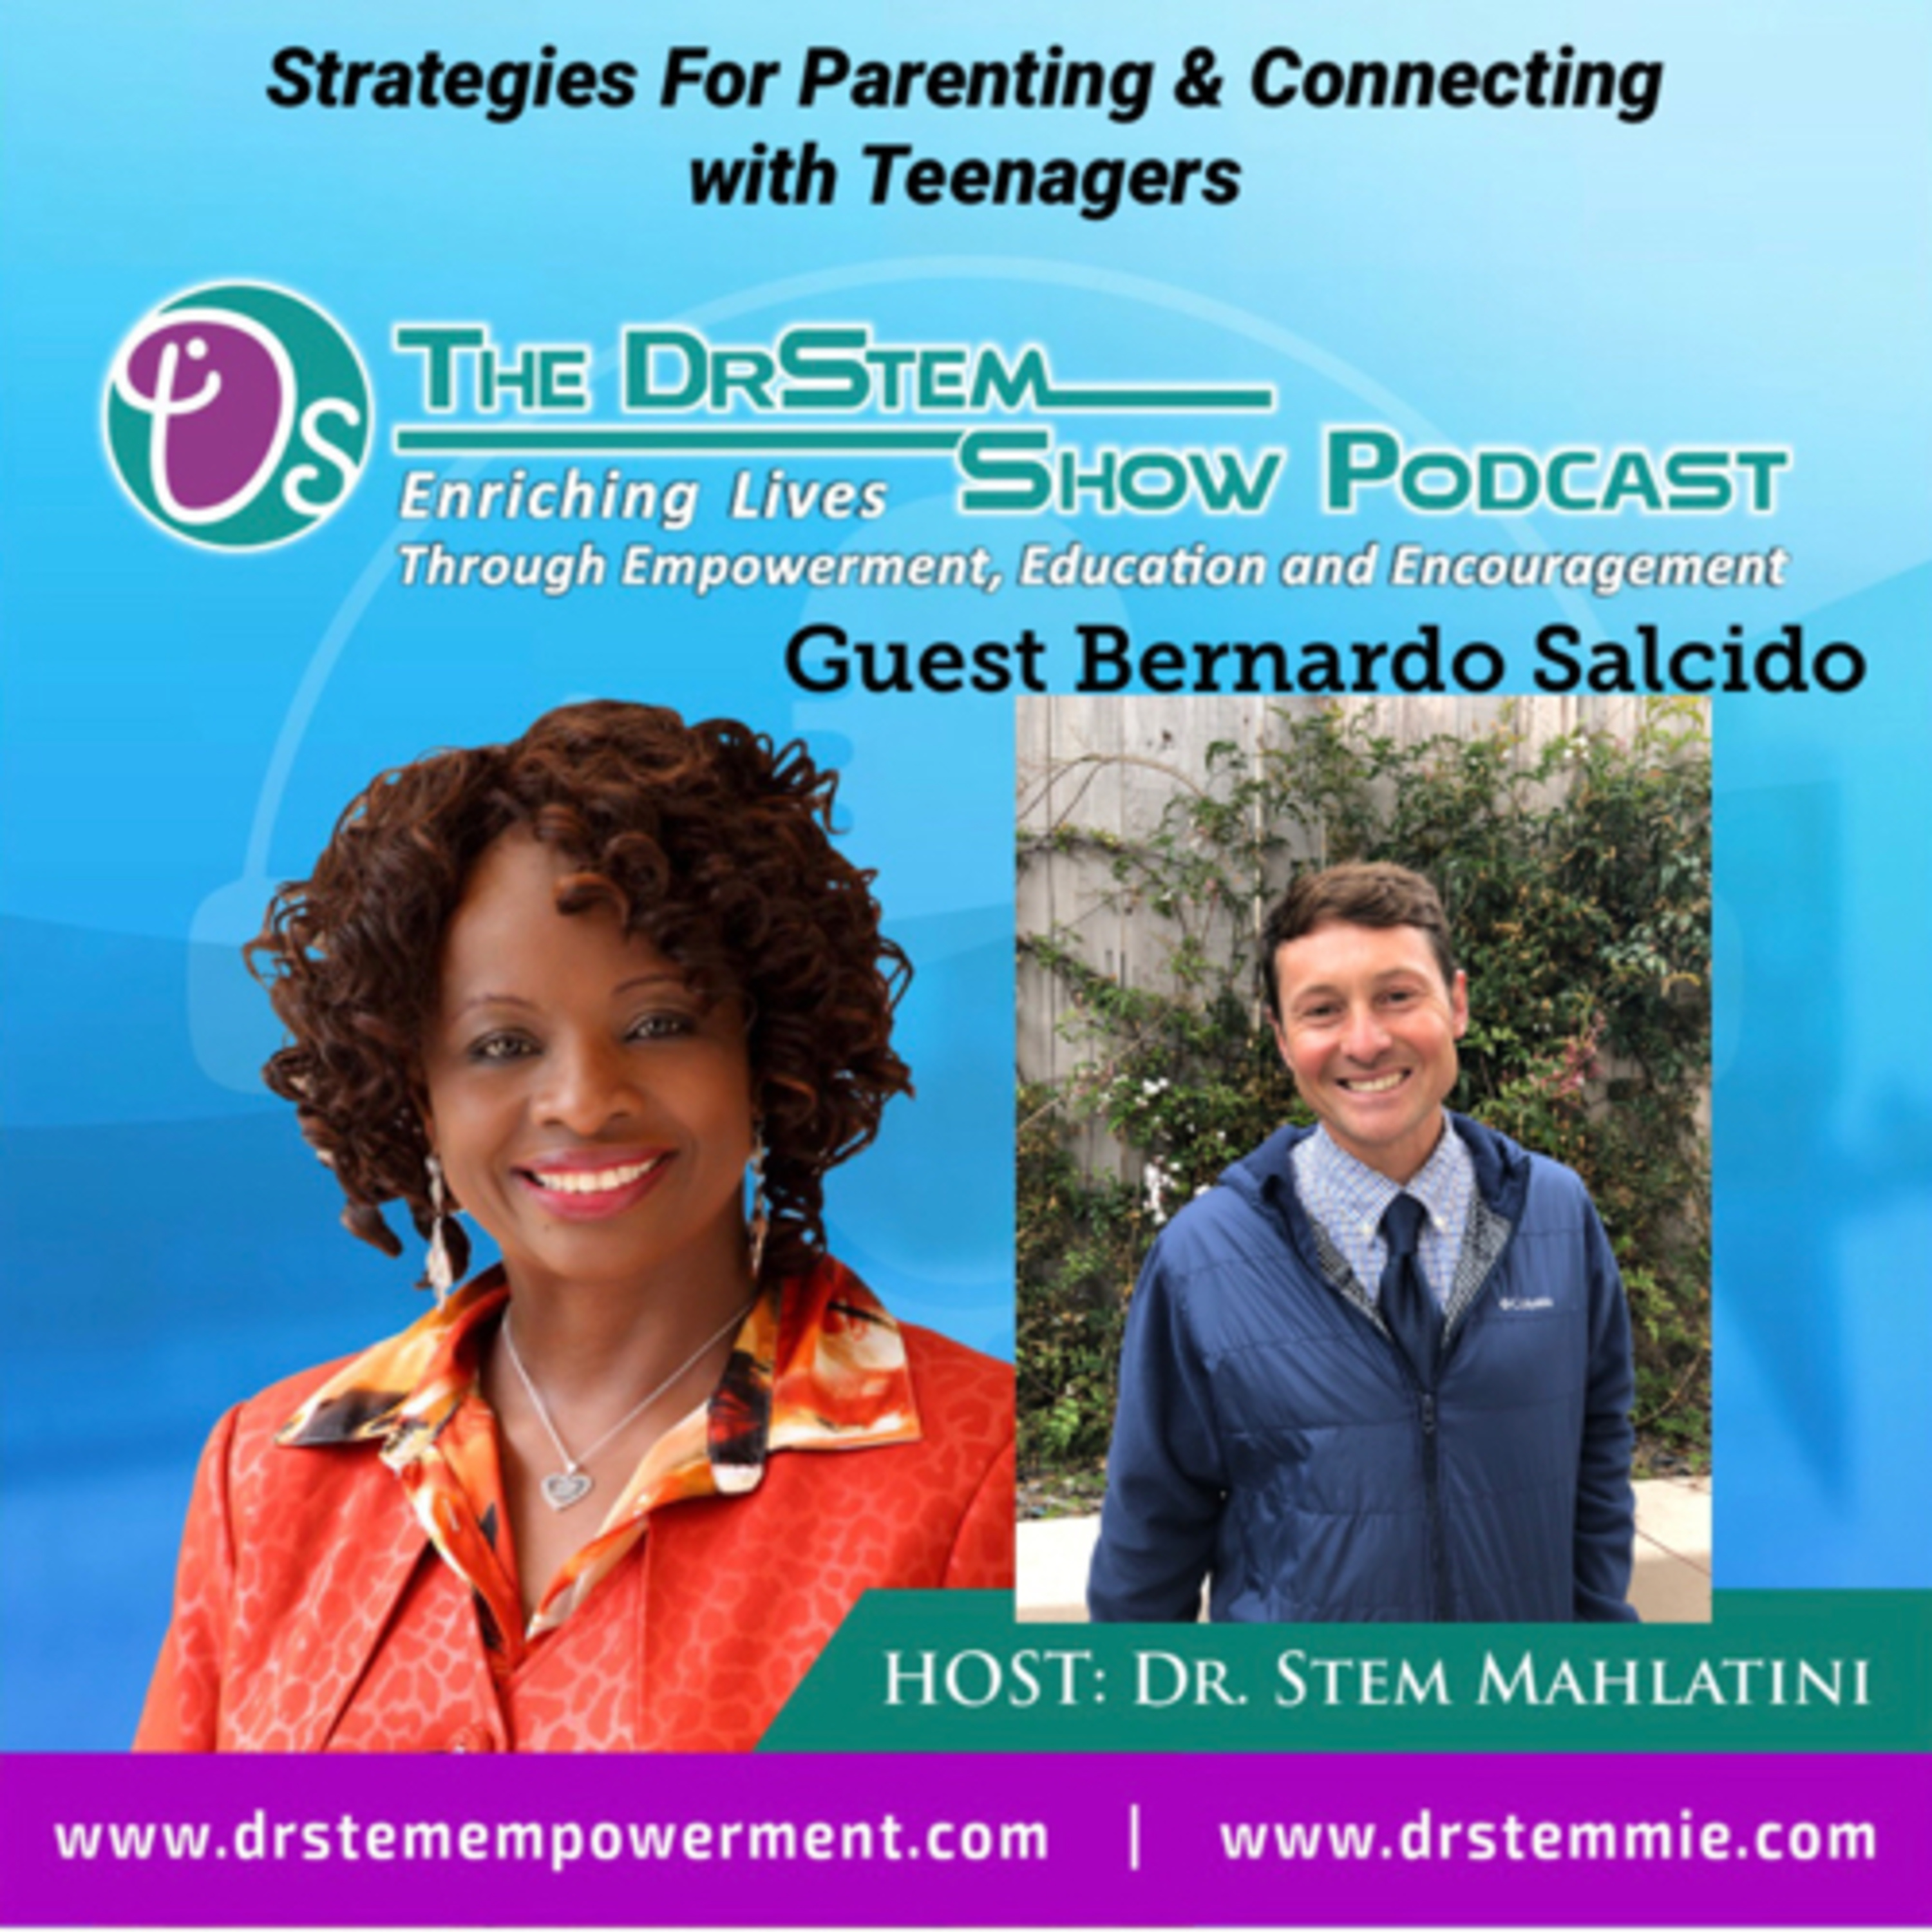 Strategies For Parenting & Connecting with Teenagers